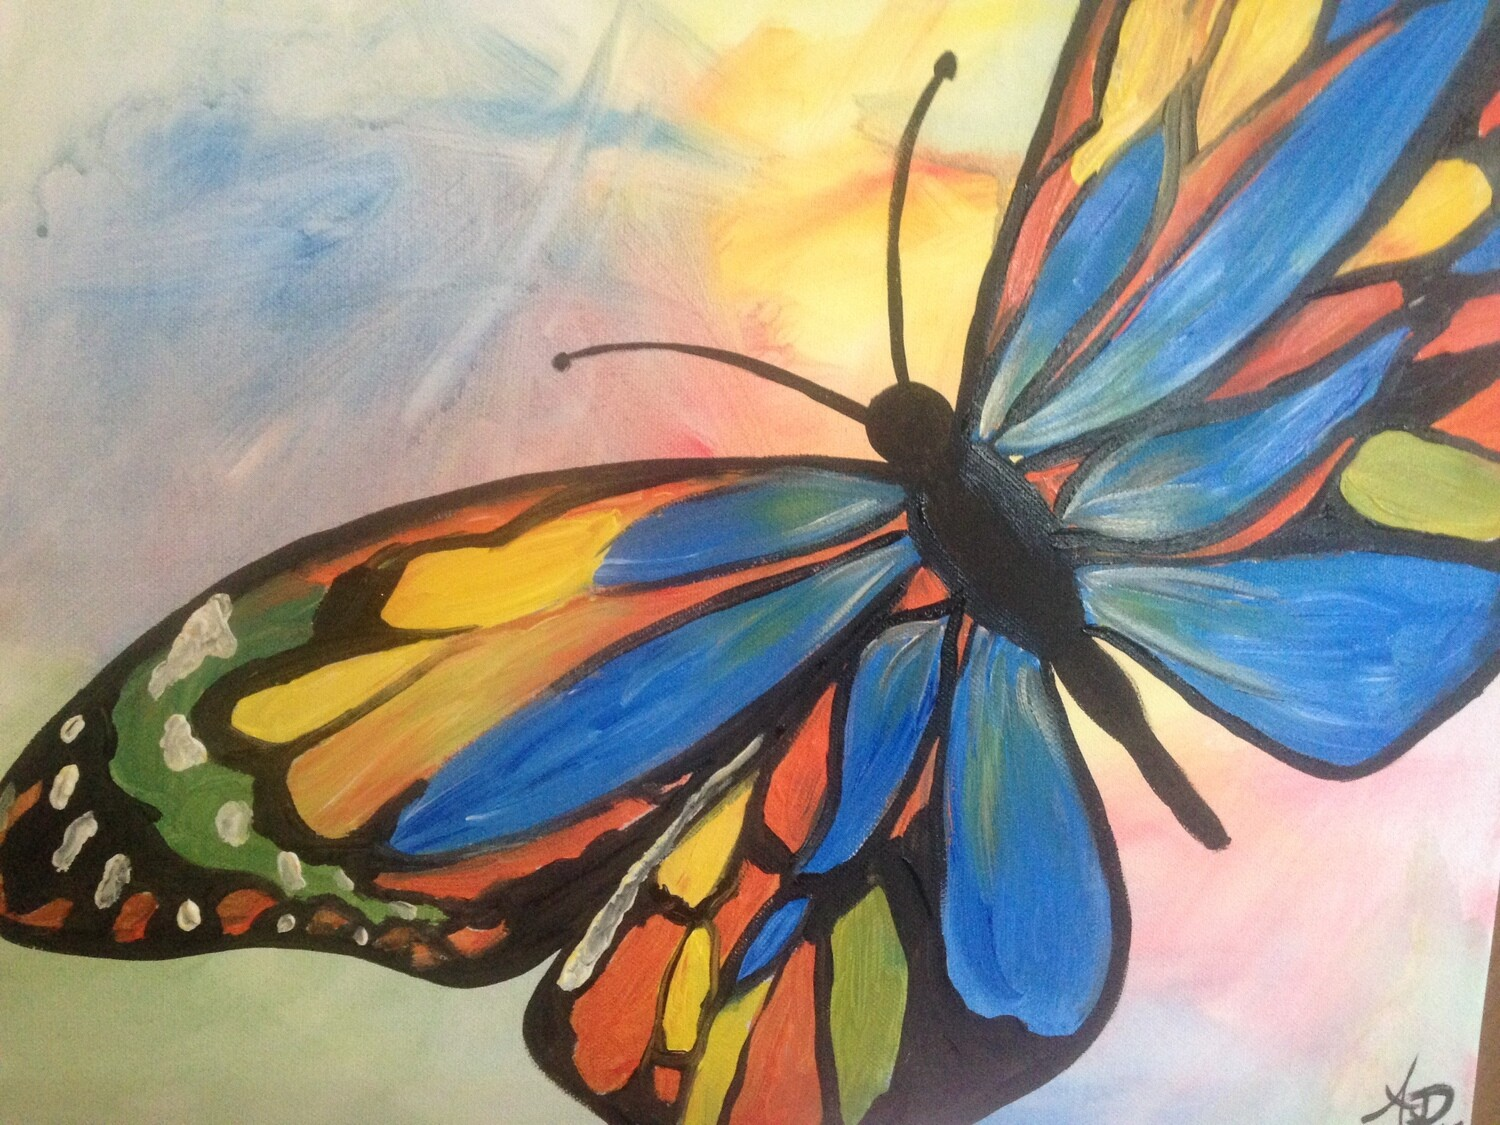 Paint pARTy at Beachstone Bar & Cafe, Sat 6th July, 4-6pm